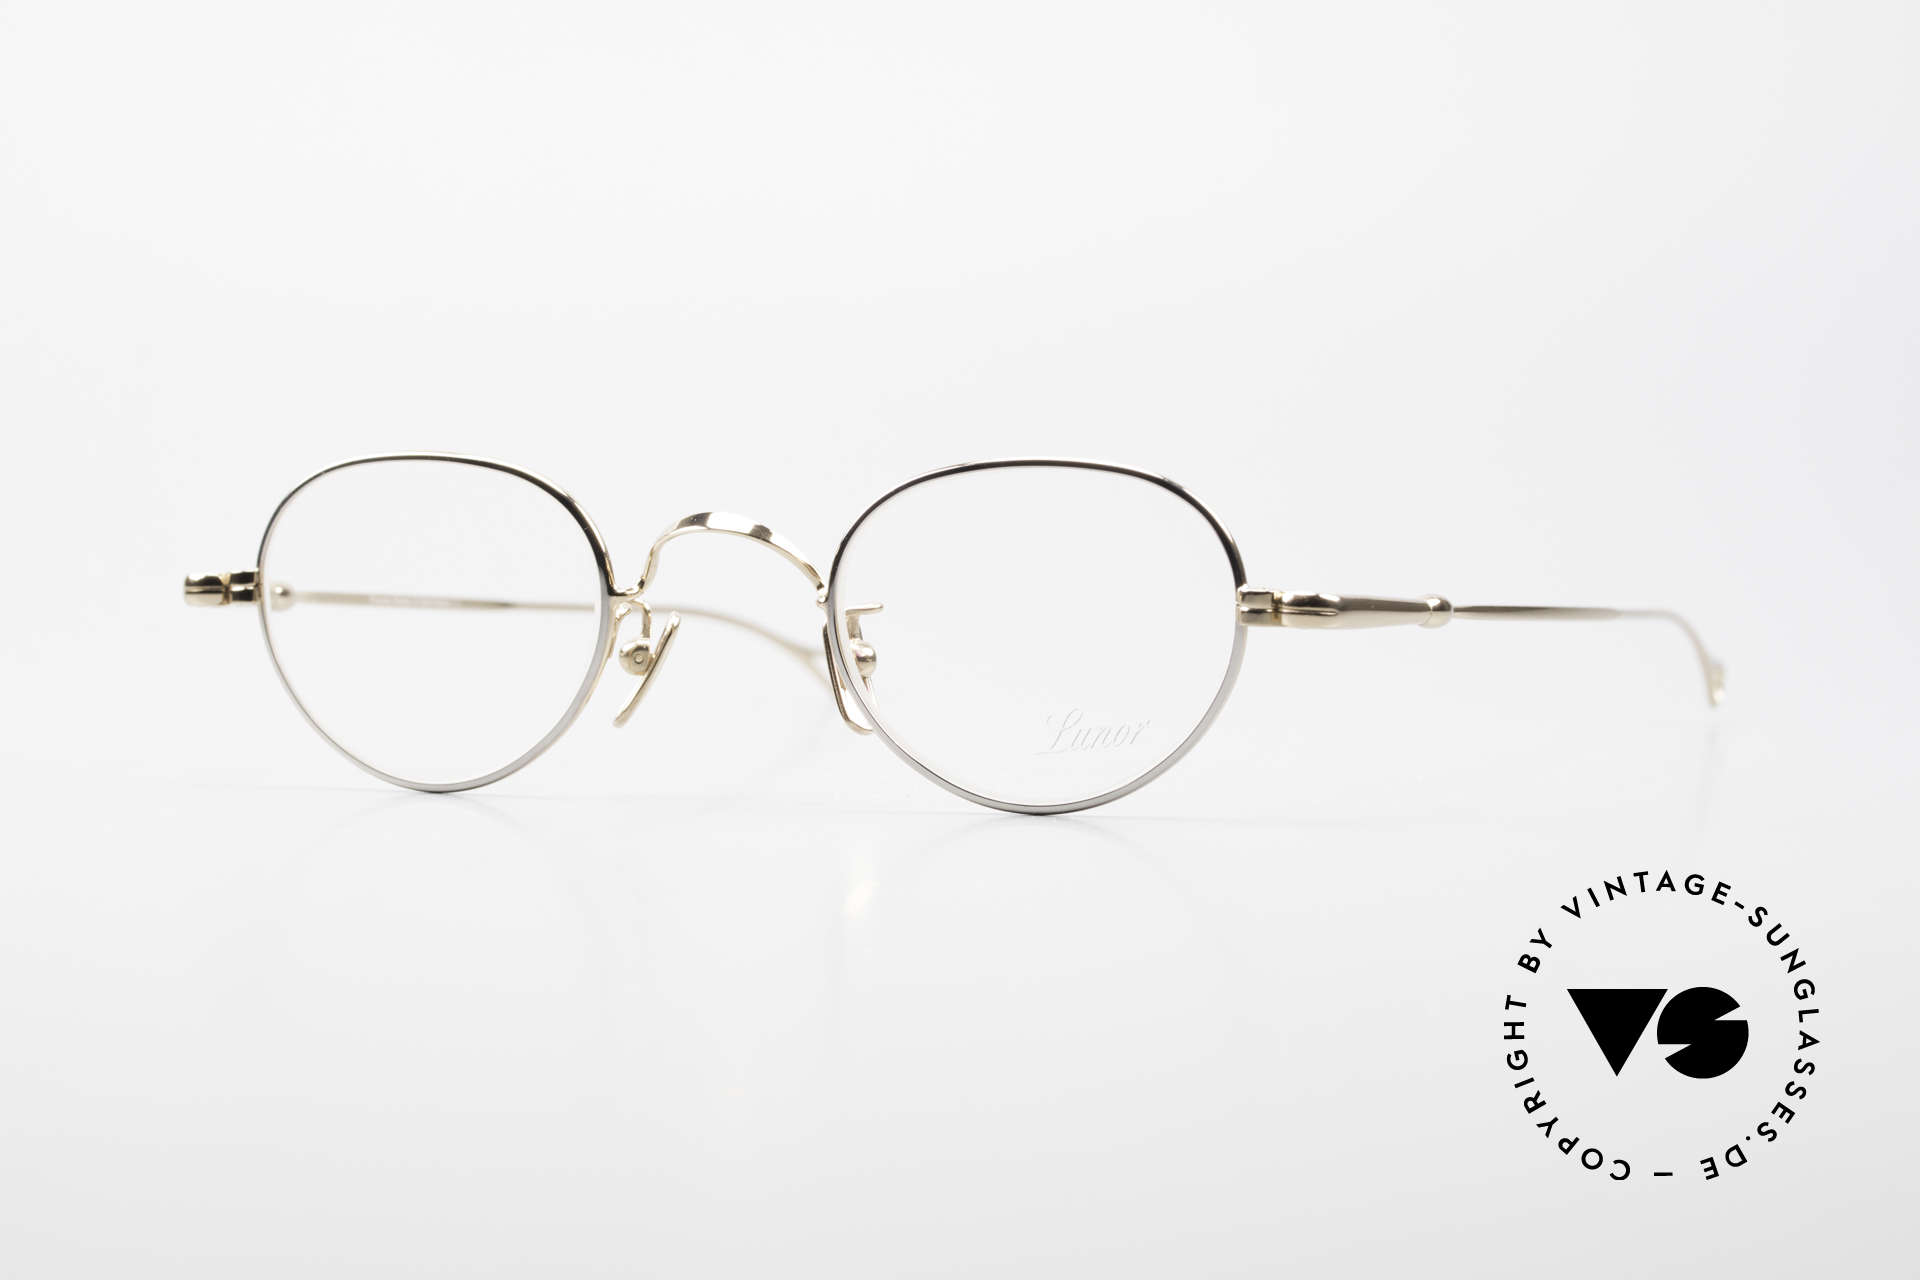 Lunor V 103 Timeless Lunor Frame Bicolor, Lunor glasses: bicolor = gold-plated & platinum plated, Made for Men and Women